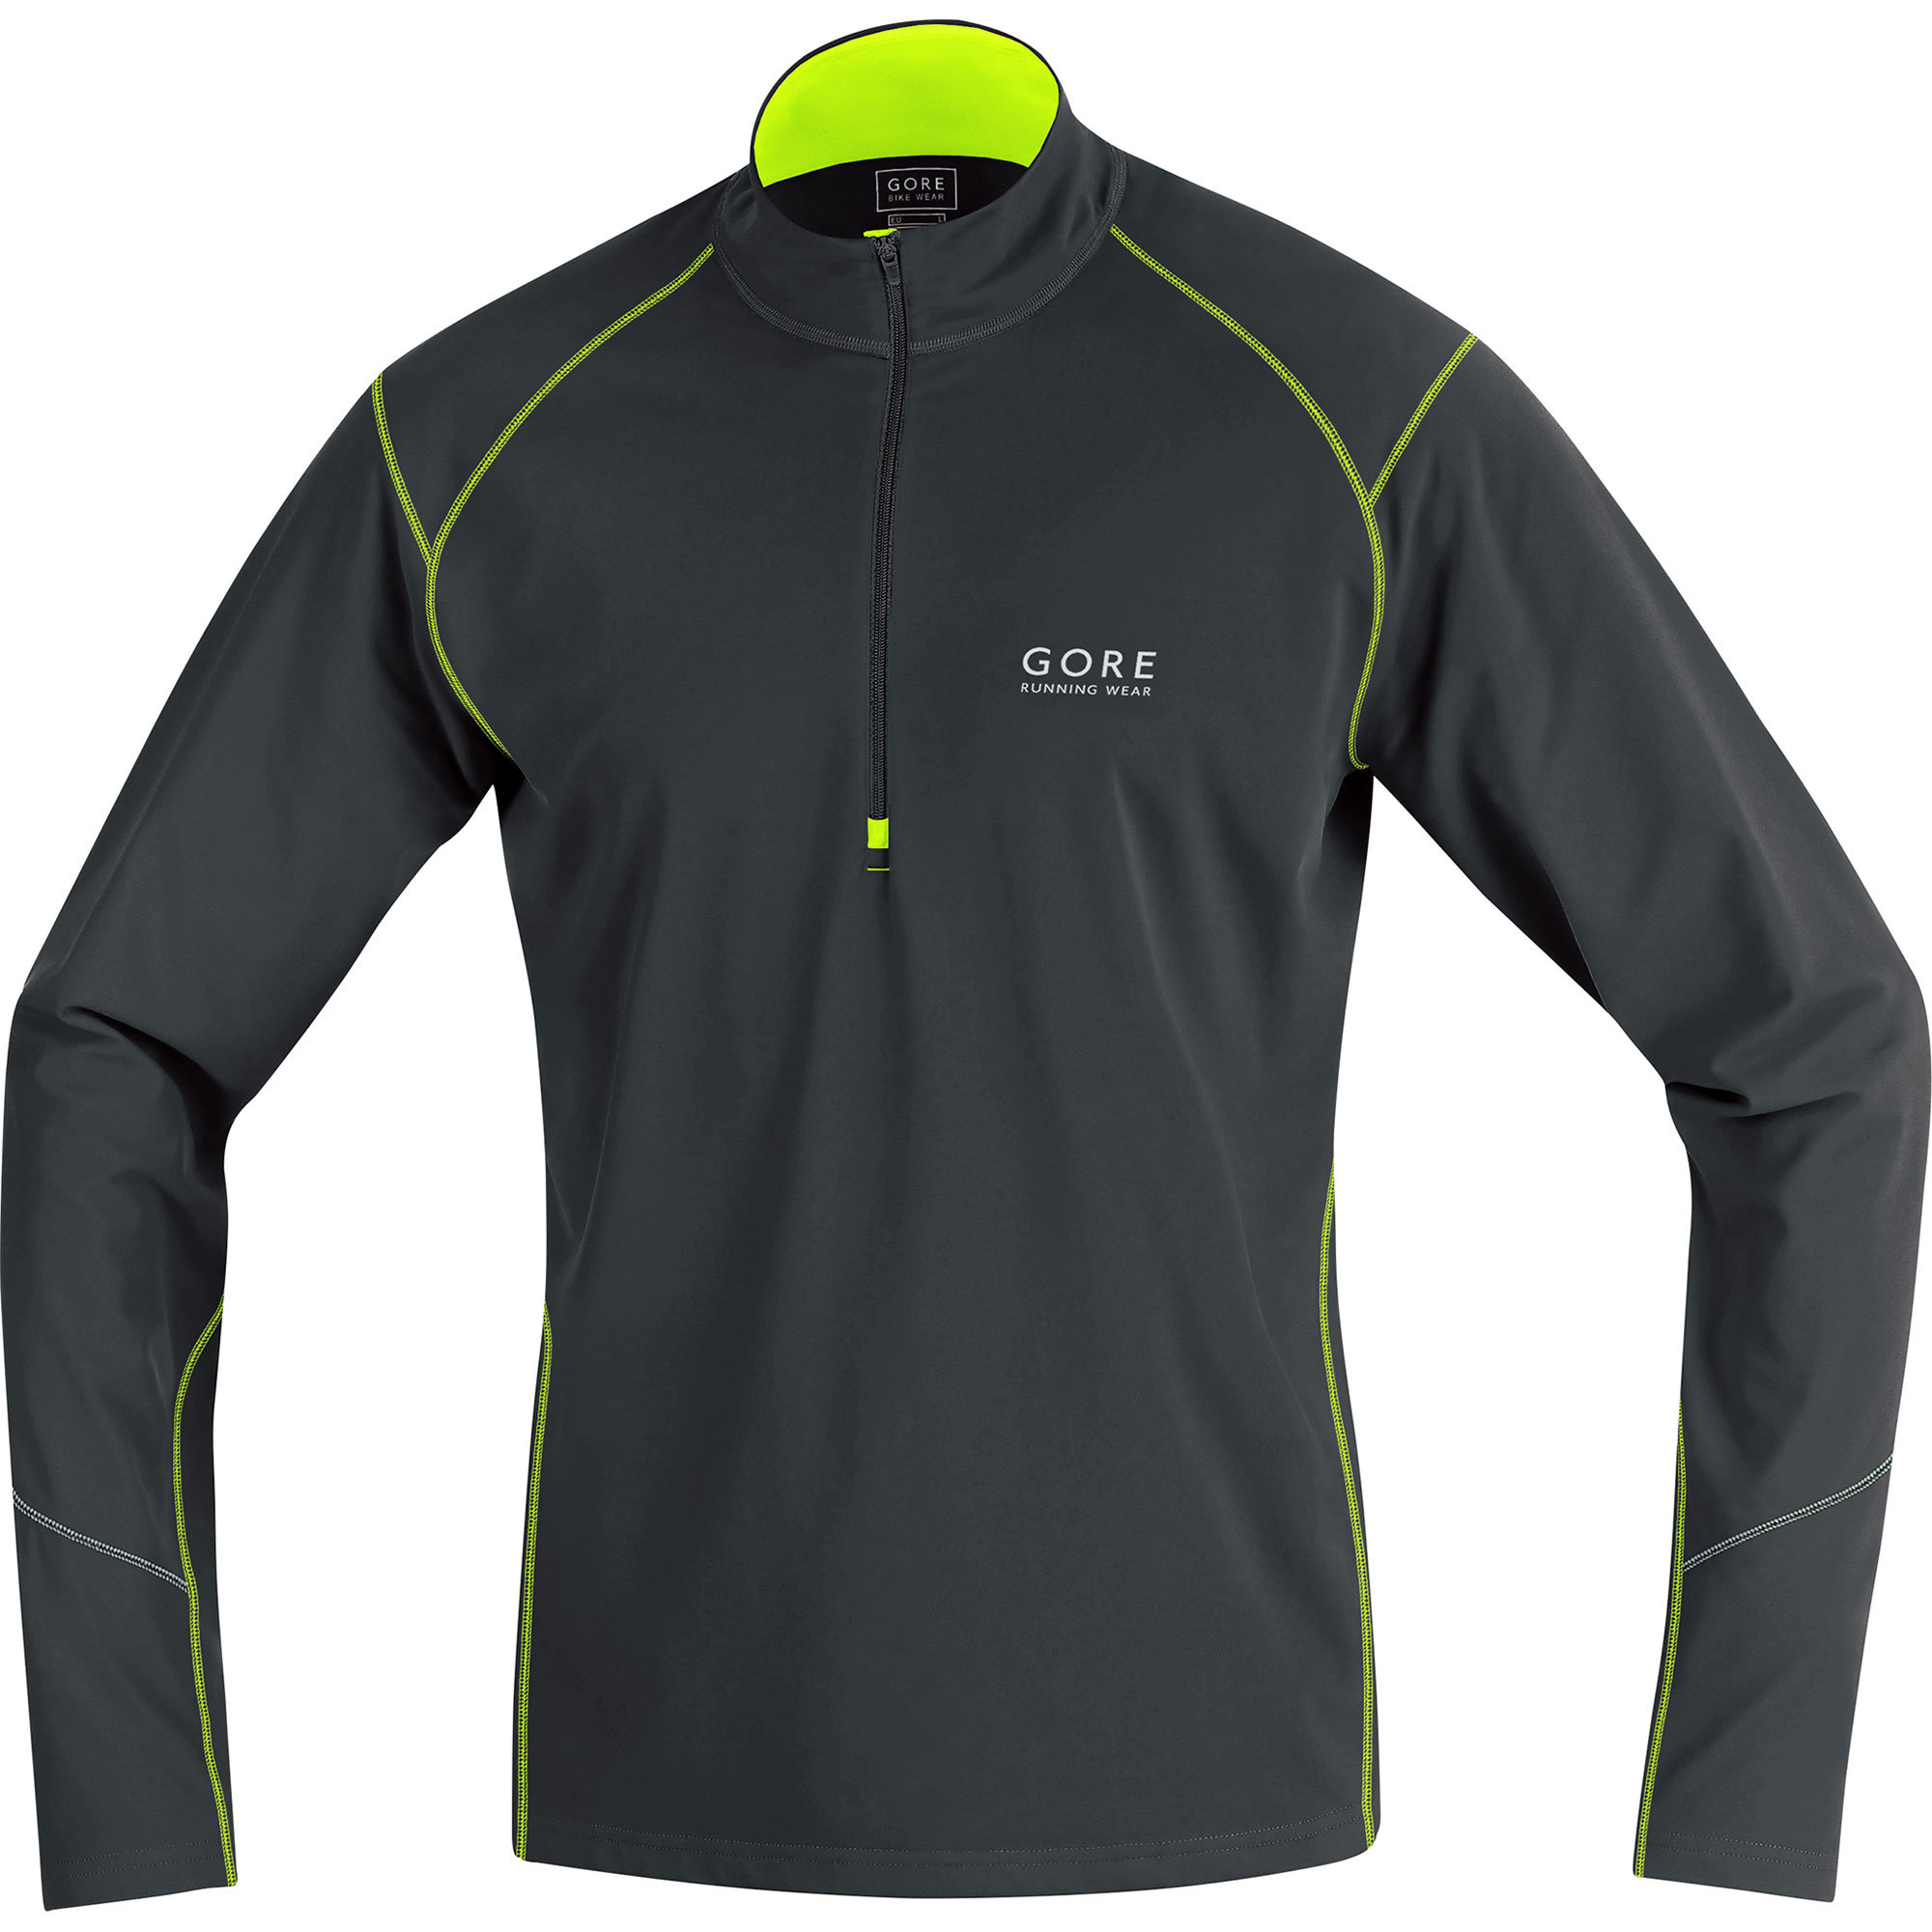 Gore Essential Thermo Zip Shirt in Schwarz Gelb